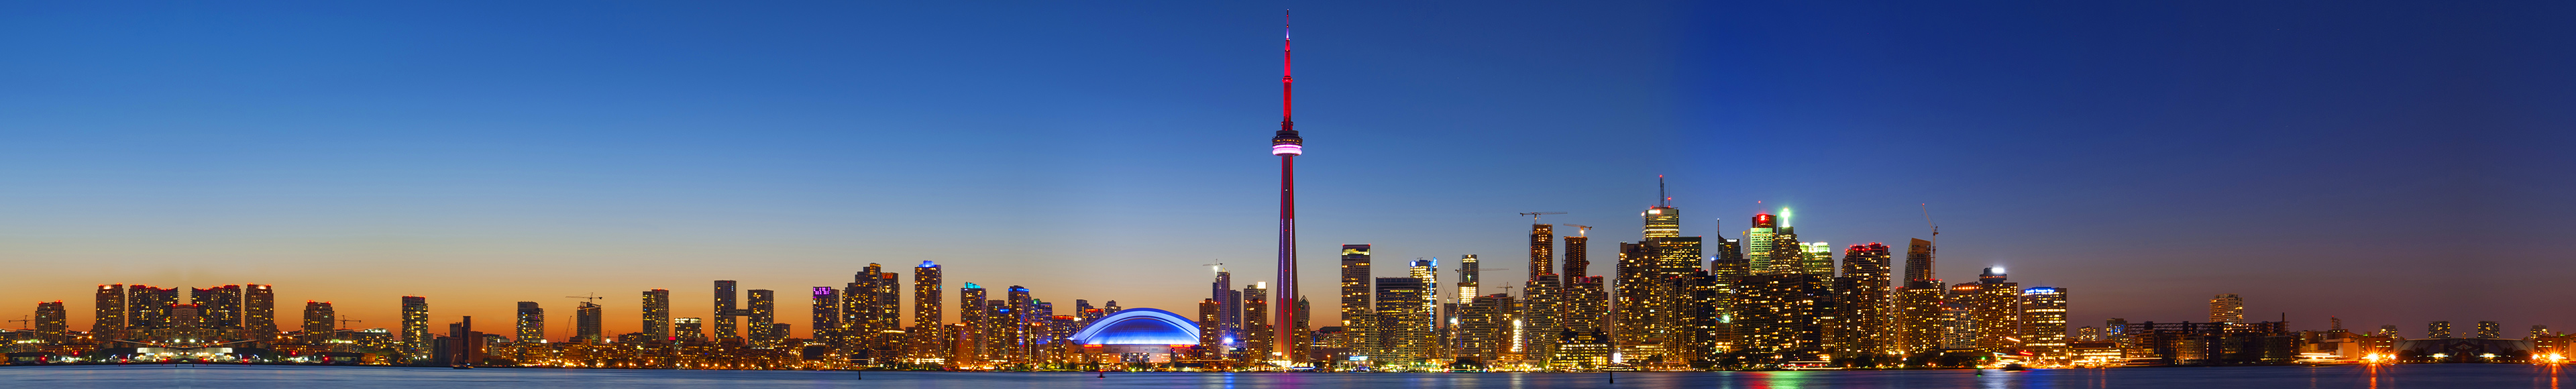 Image of Toronto night skyline